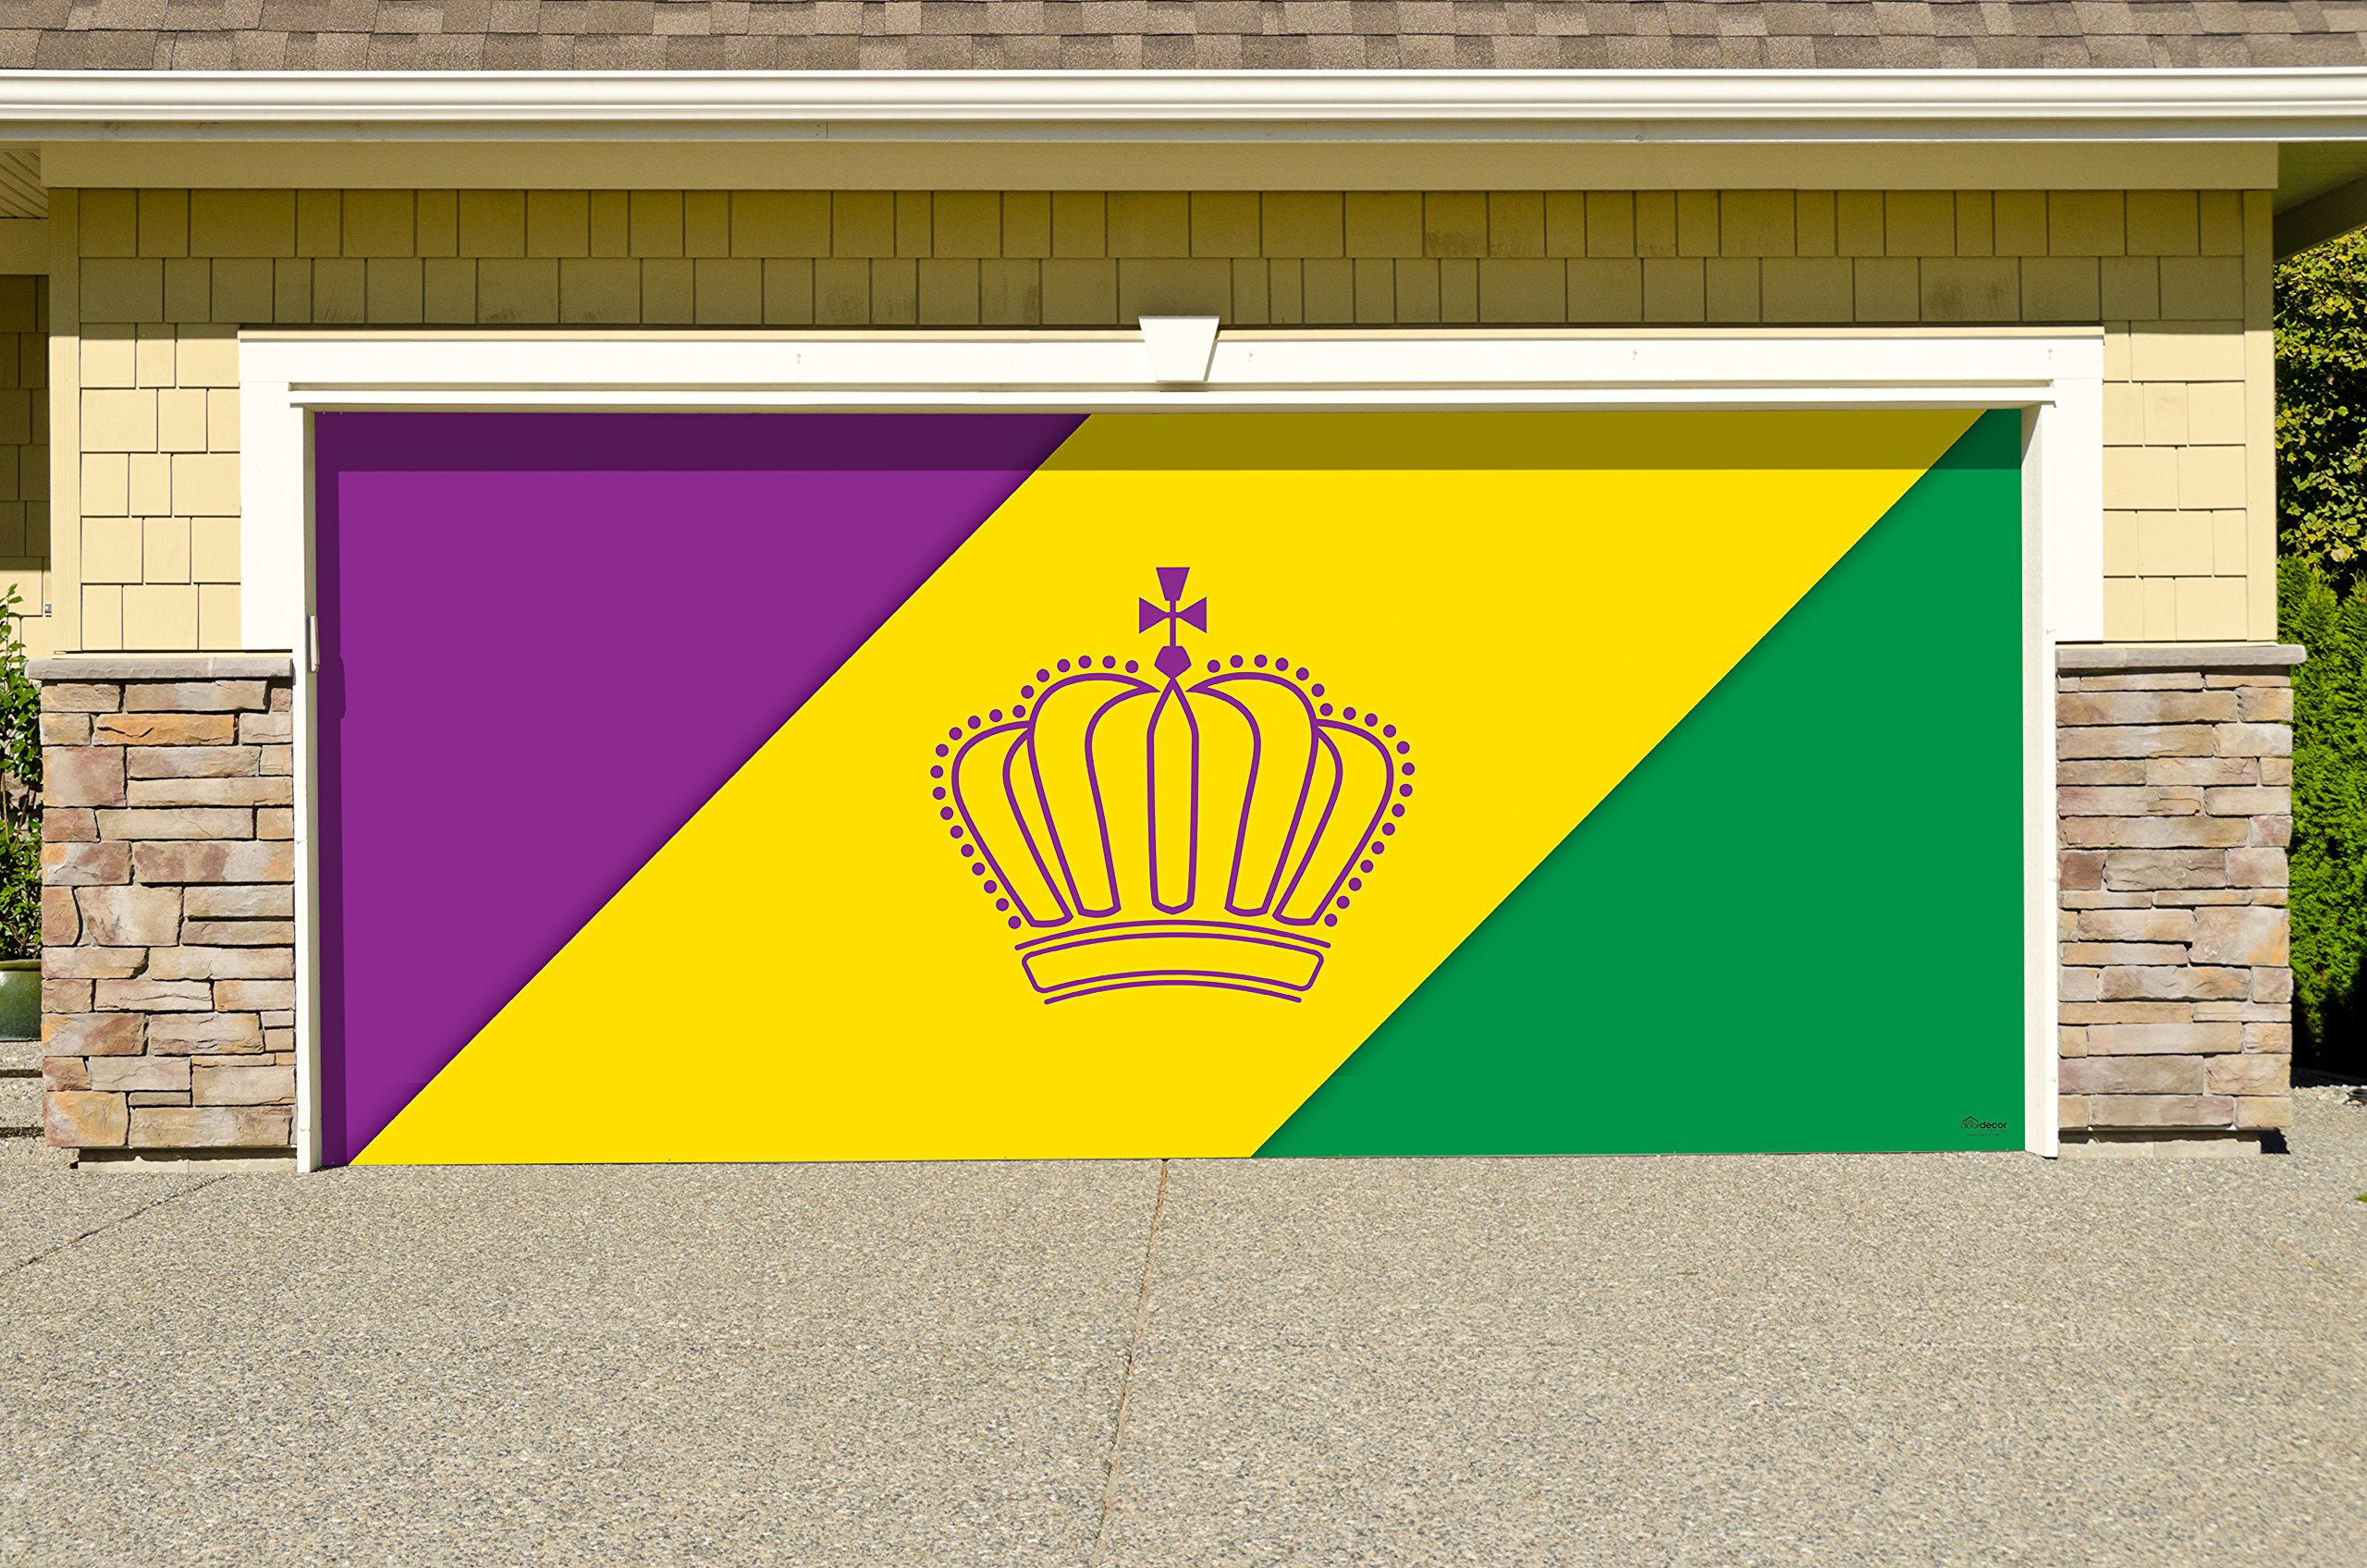 Outdoor Mardi Gras Decorations Garage Door Banner Cover Mural Décoration 7'x16' - Mardi Gras Diagonal Stripes - ''The Original Mardi Gras Supplies Holiday Garage Door Banner Decor''